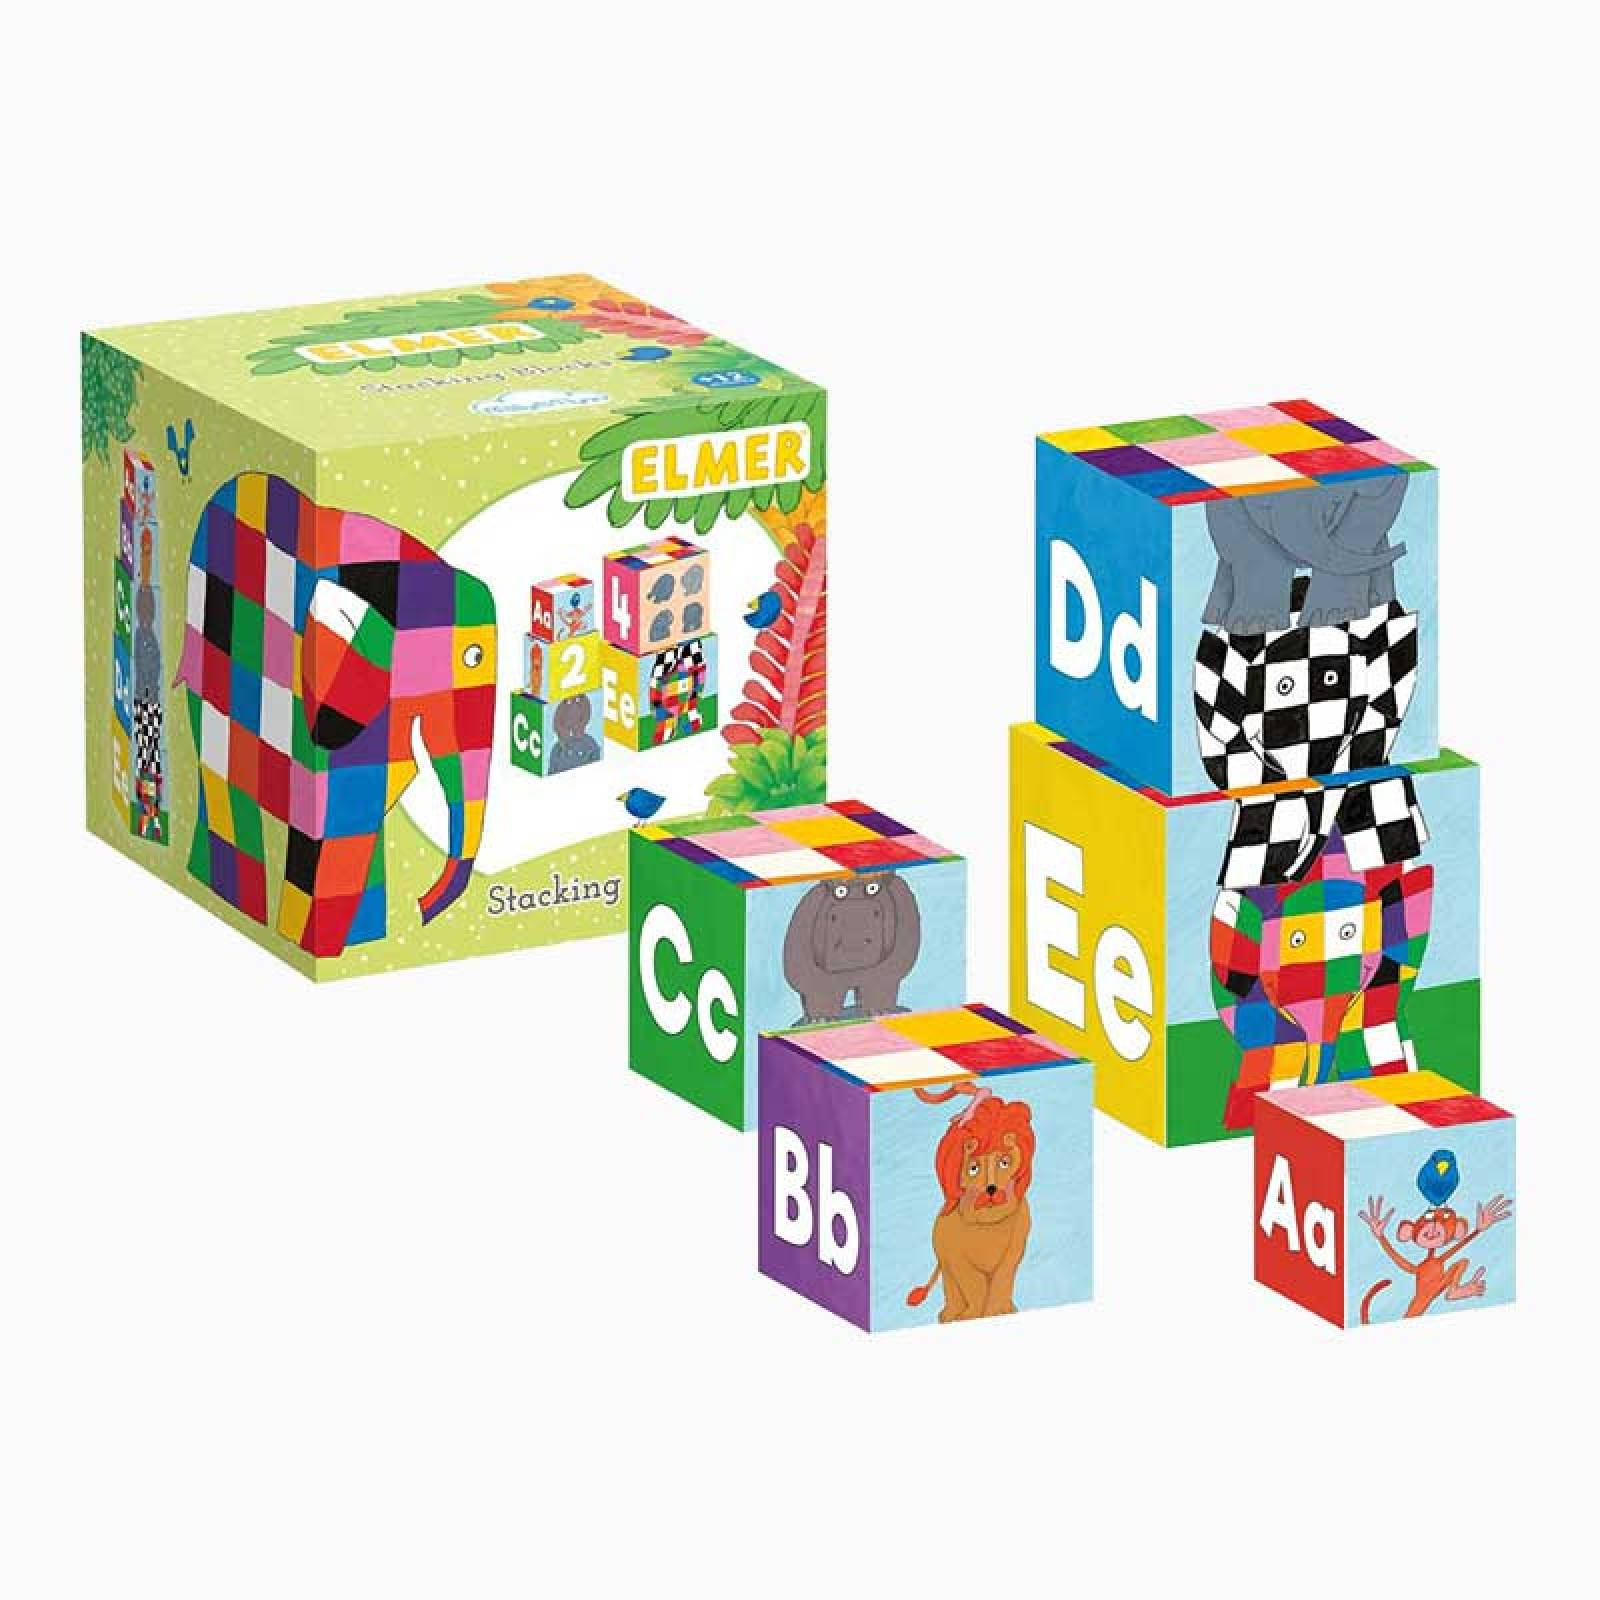 Elmer Stacking Blocks 1+